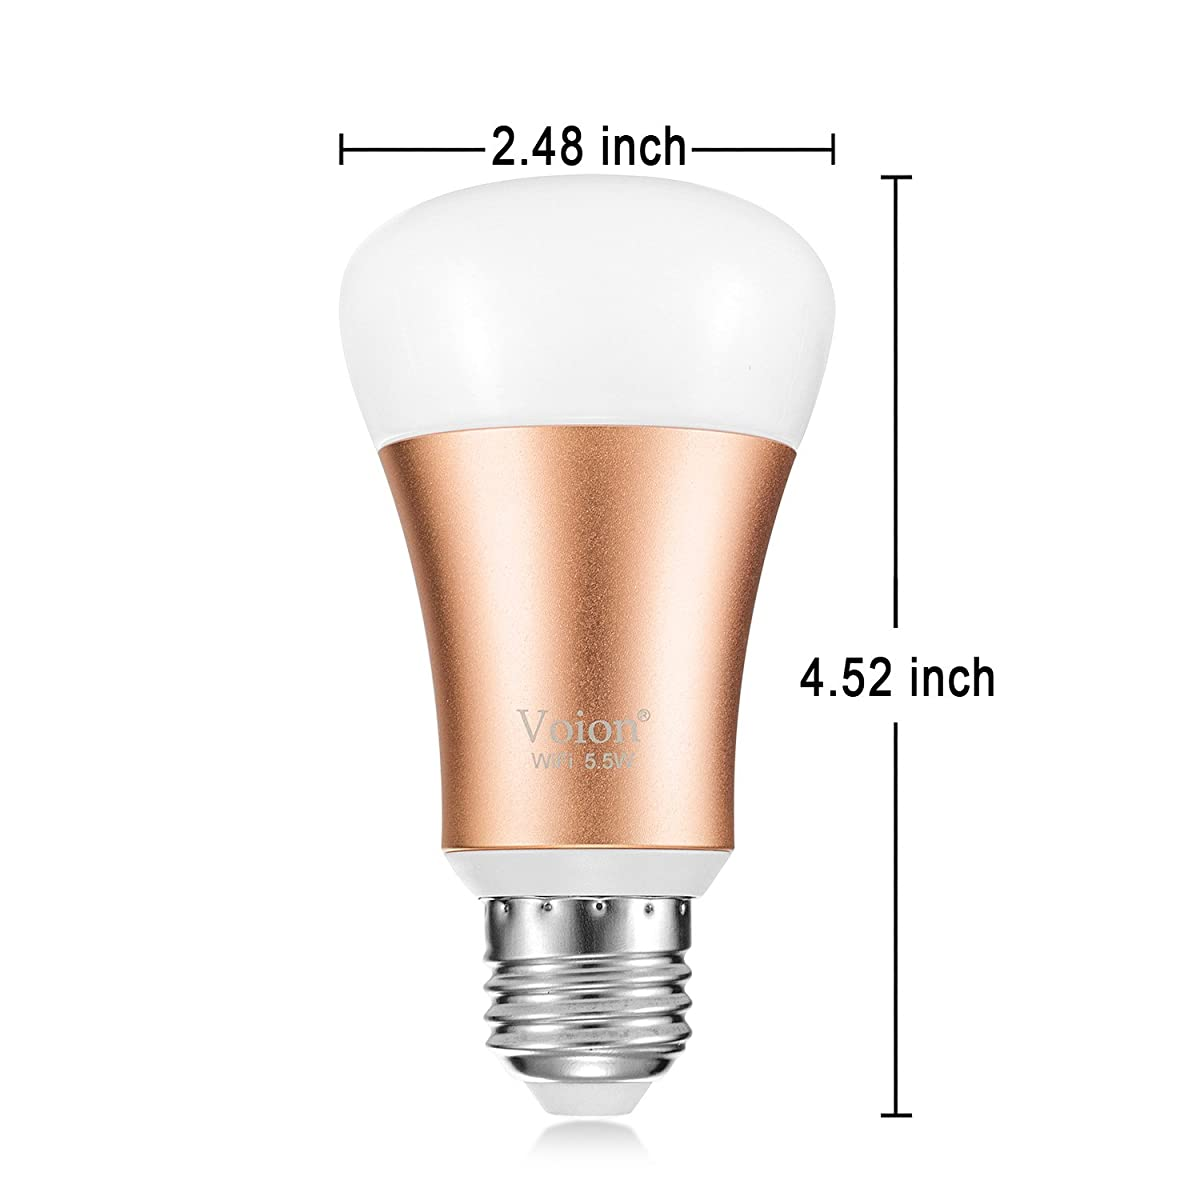 Voion WiFi Smart LED Bulb, Works with Alexa, Dimmable LED Light Bulb, Tunable Multicolor, 5.5W, Energy Saving, 1-Pack